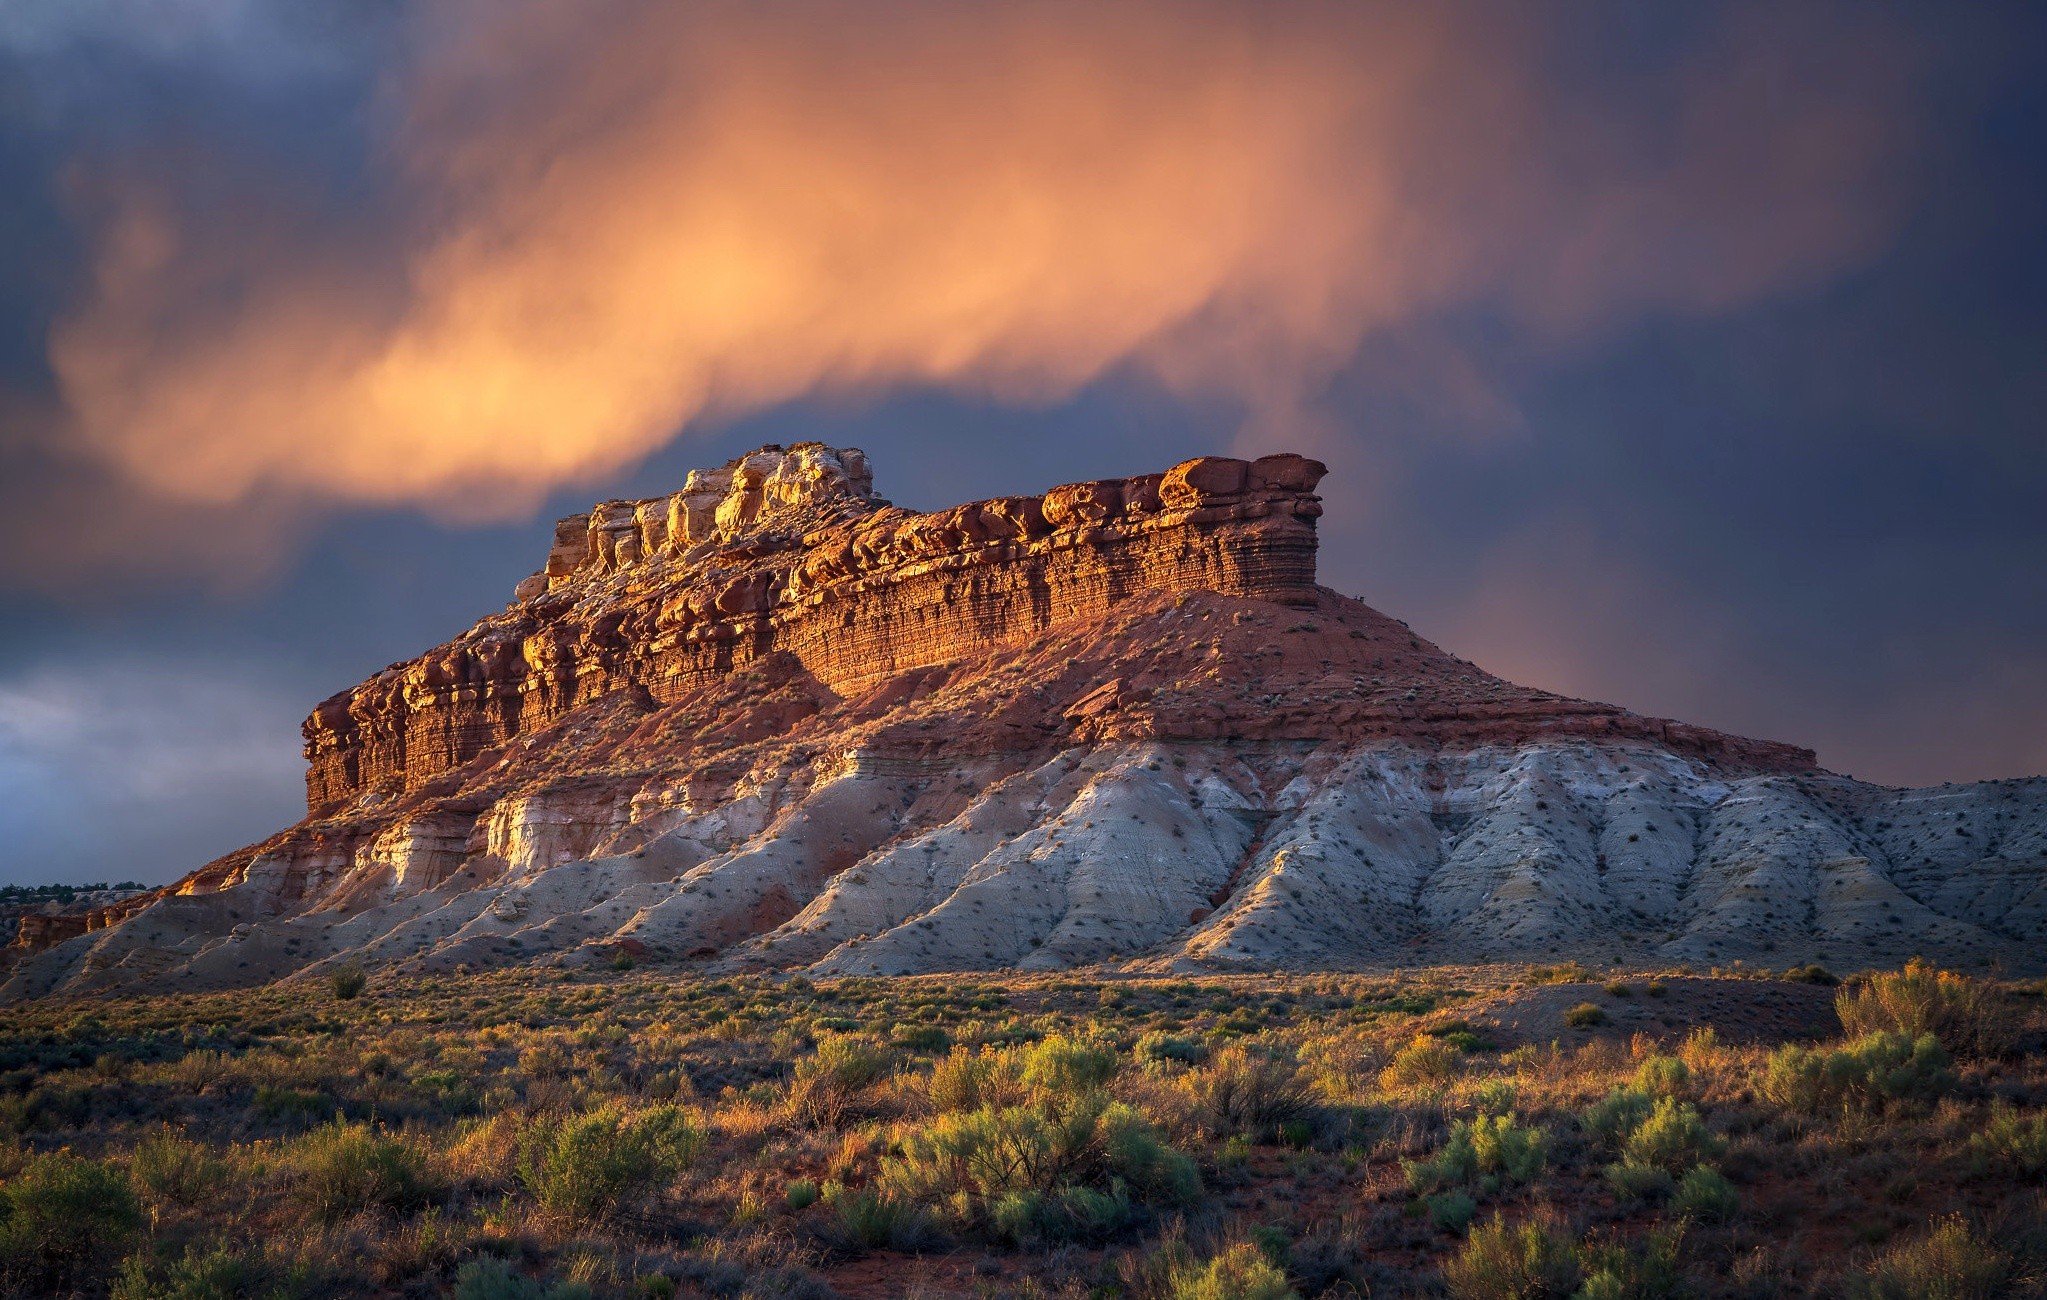 General 2047x1300 USA rock nature landscape Arizona